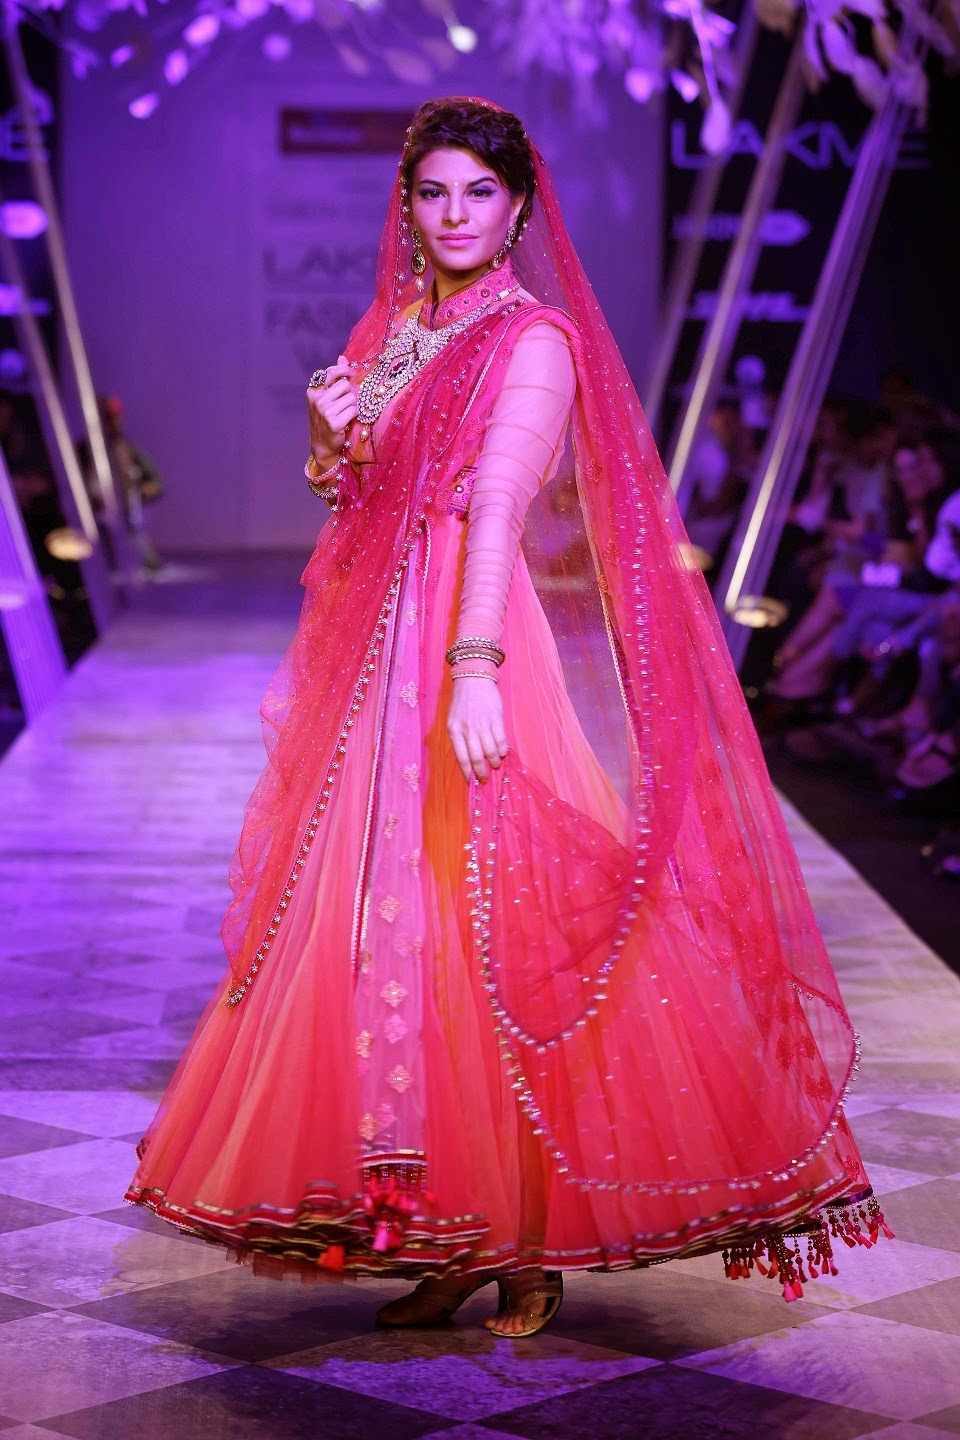 Reliance Jewels presented Tarun Tahiliani's fabulous collection during Lakmé Fashion Week Summer/Resort 2014 to end Day One.